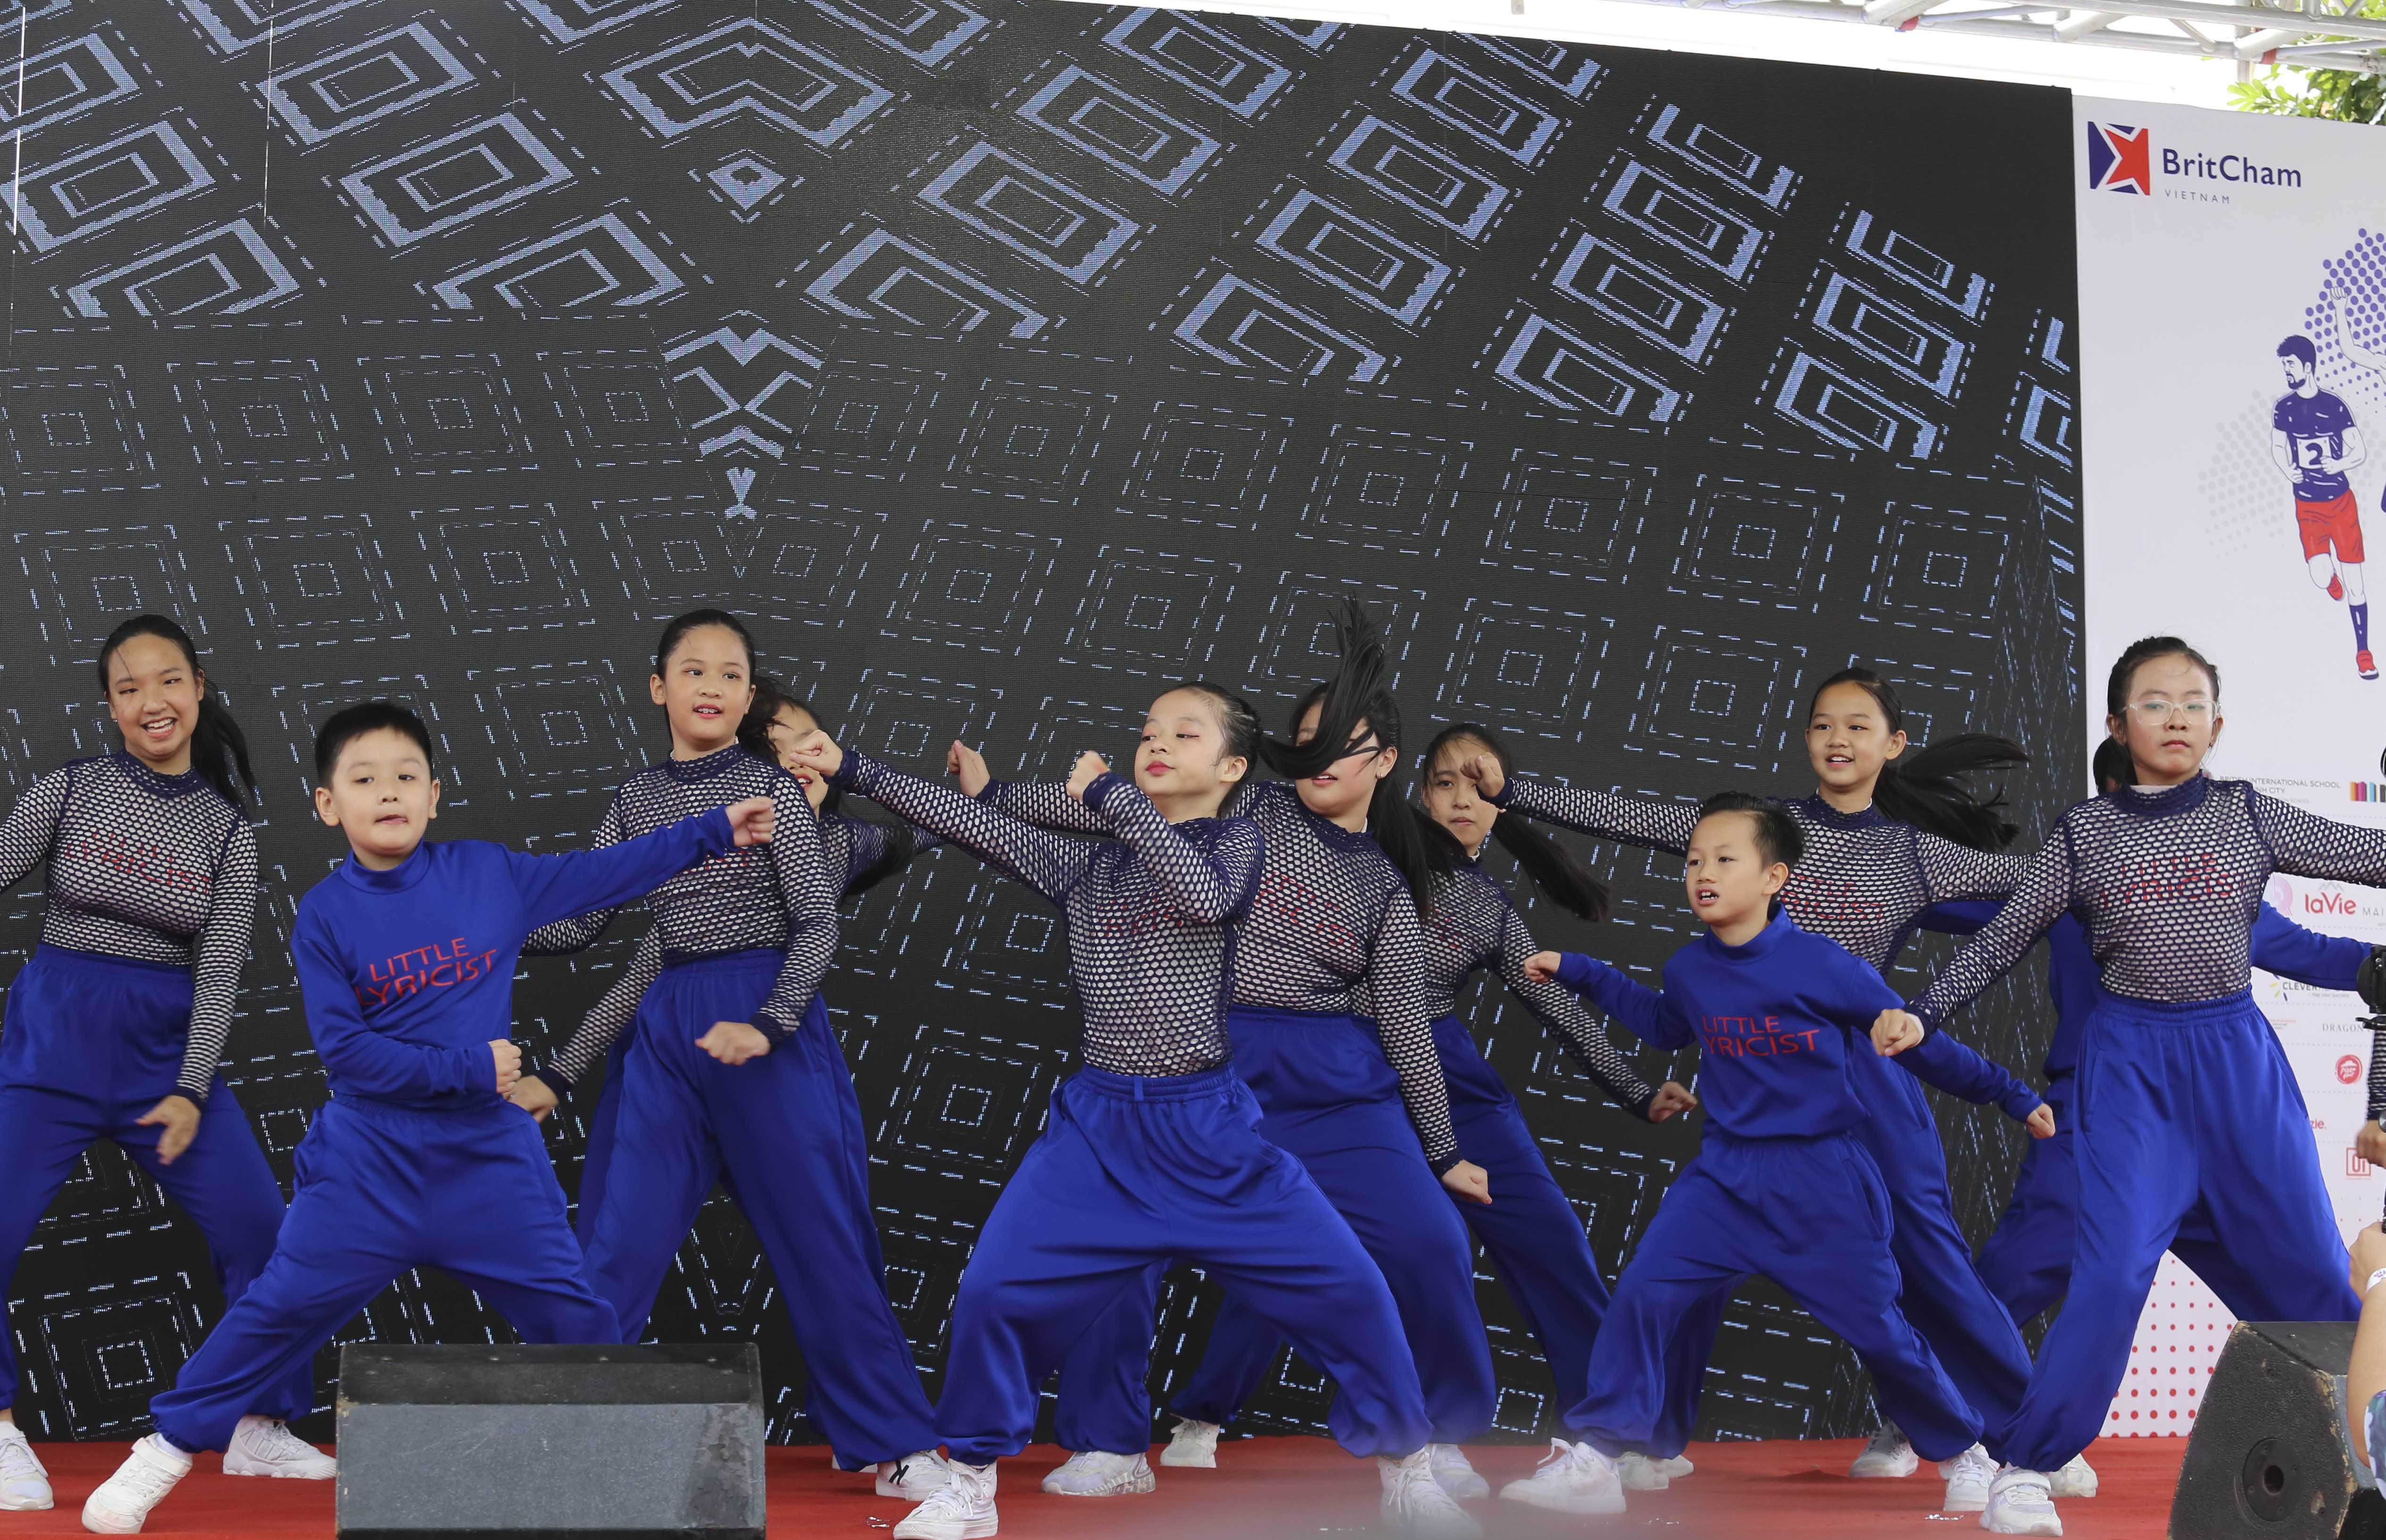 A performance from the Young Lyricists dance crew at the 20th BritCham Charity Fun Run in Ho Chi Minh City on November 15,2020. Photo: Duc Khue/ Tuoi Tre